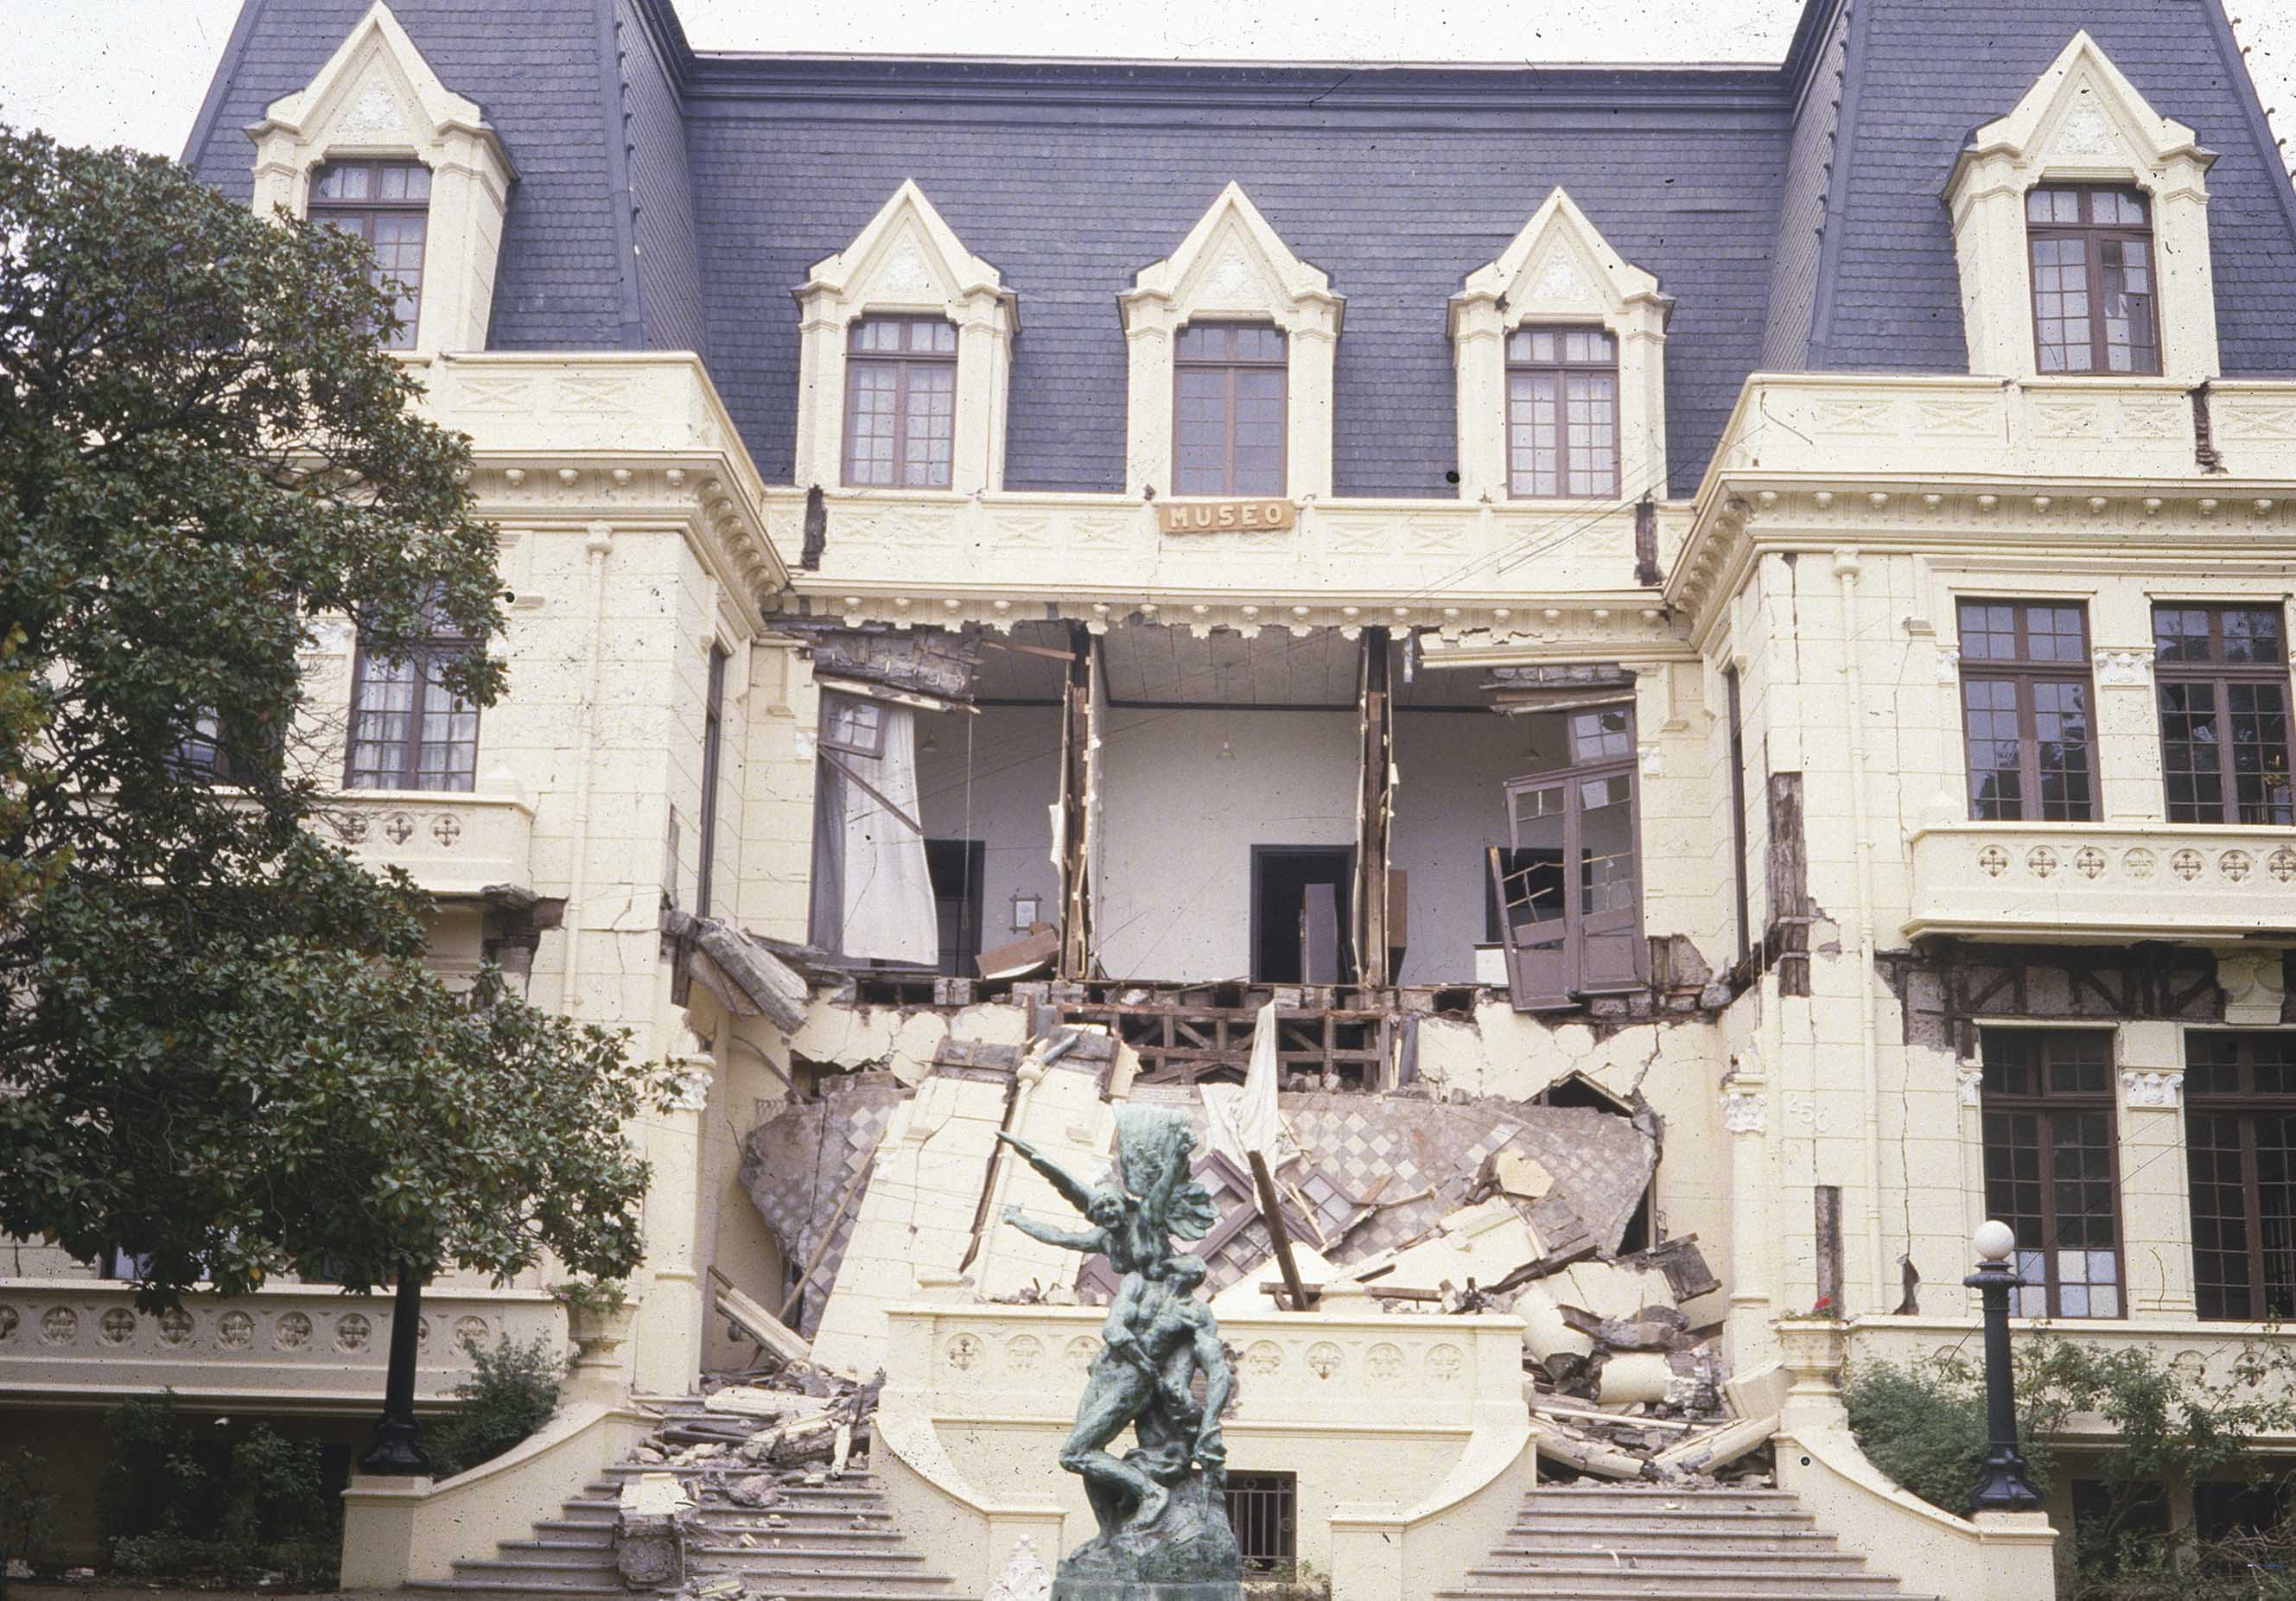 Enterreno - Fotos históricas de chile - fotos antiguas de Chile - Palacio Carrasco de Viña del Mar en 1985